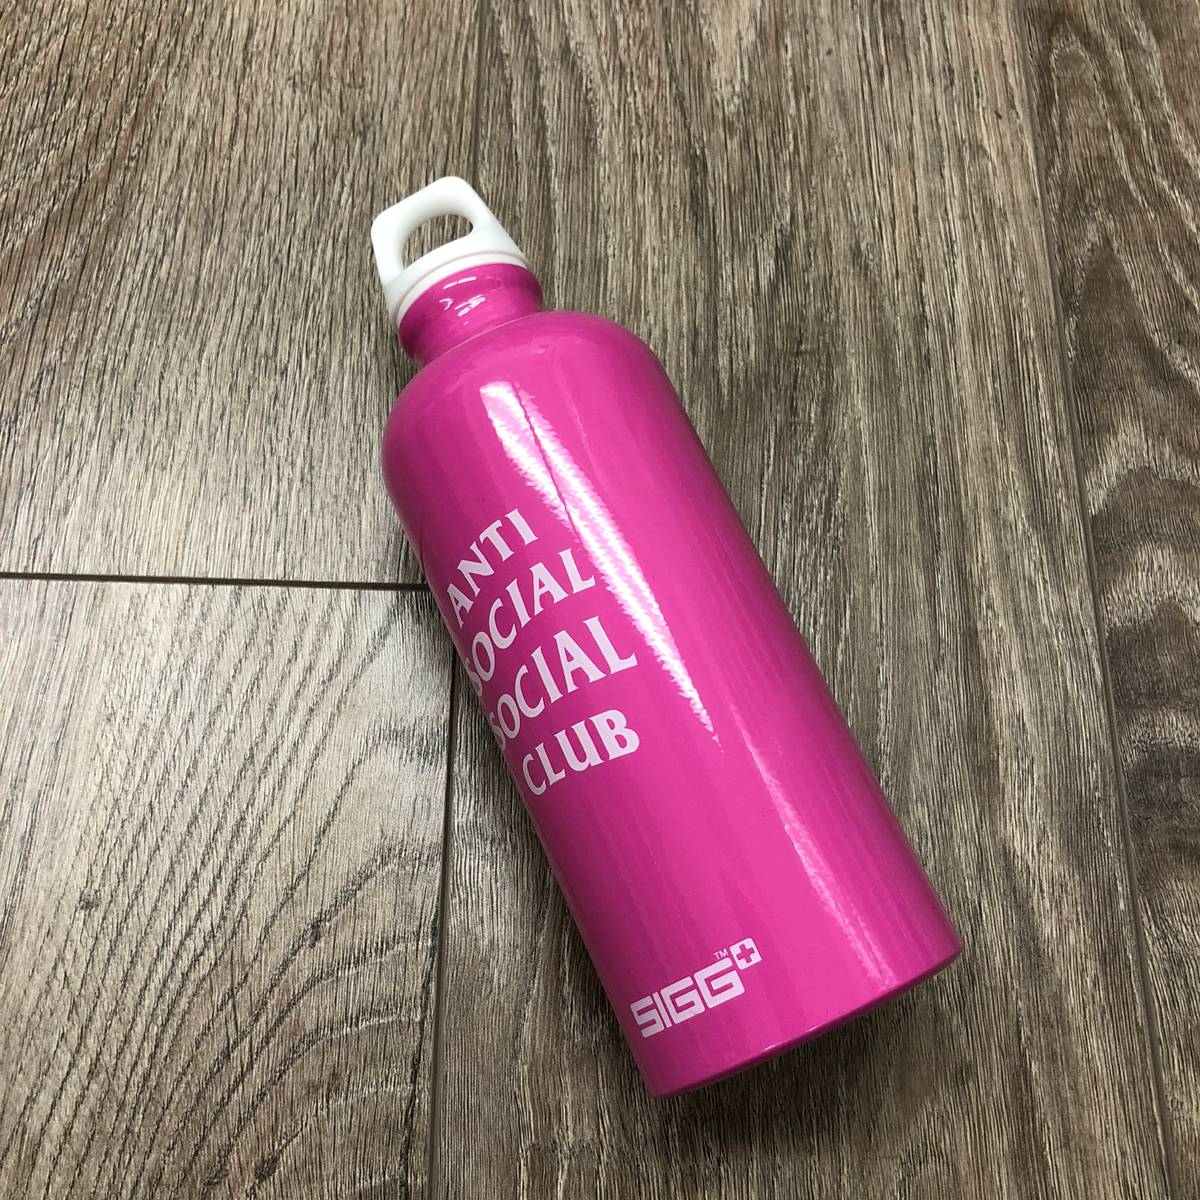 Auth Anti Social Social Club ASSC x SIGG water bottle SUPREME BAPE in hand